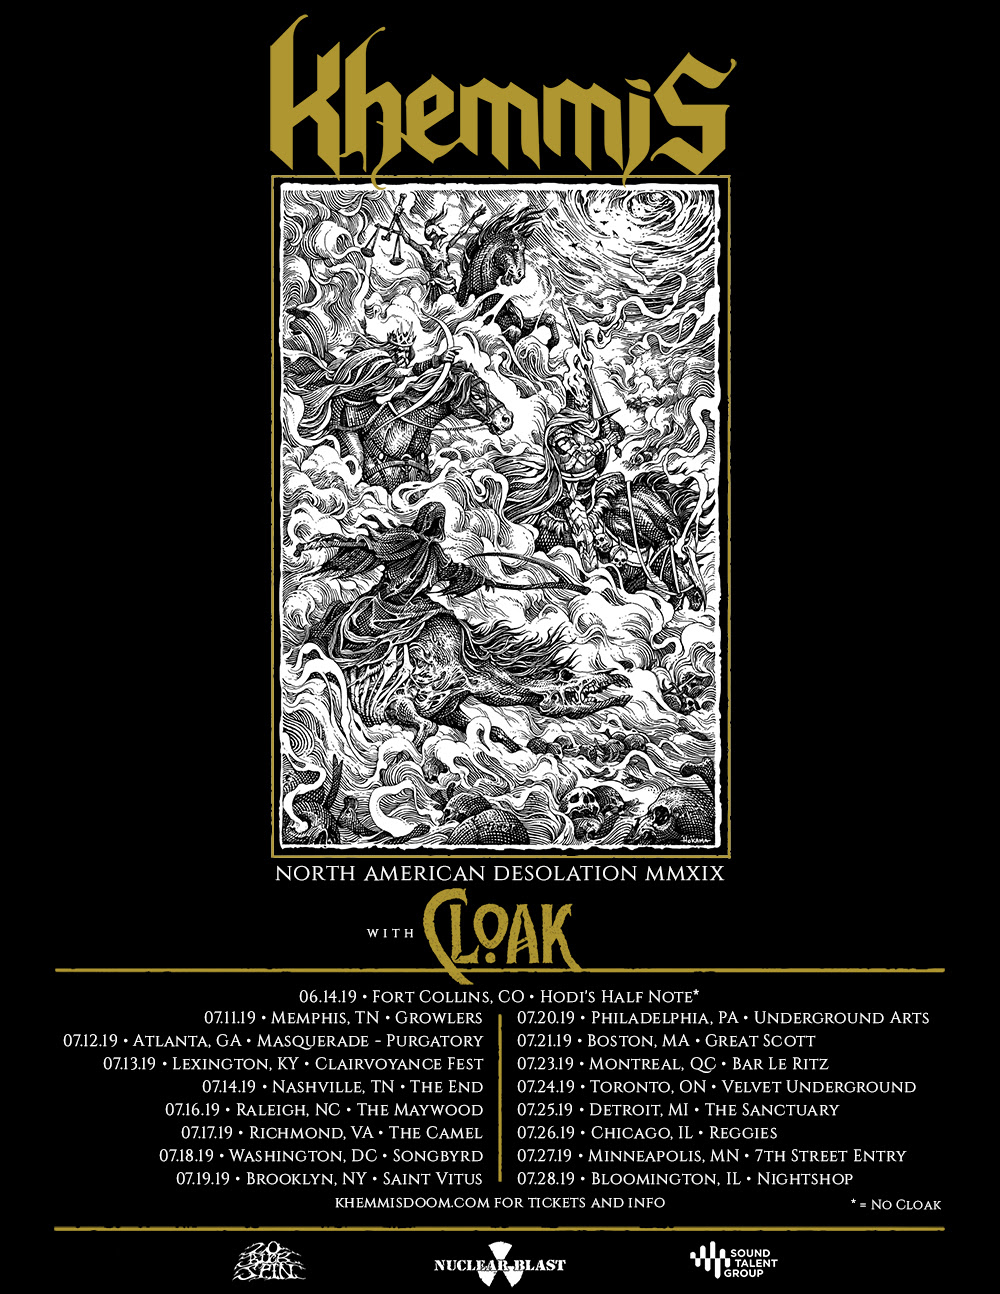 """Denver, Colorado based doomed heavy metal quartet KHEMMIS are proud to announce their North American Desolation 2019 tour . The 16-date tour will kick-off on July 11th at Growlers in Memphis,Tennessee. The trek will make stops in Richmond, Philadelphia, and Detroit beforeconcluding on July 28th at Nightspot inBloomington, Illinois. Joining the band on the tour isAtlanta, Georgia's metal quartet CLOAK . Prior to the main run. KHEMMIS will play a stand alone show on June 14th at Hodi's Half Note in Fort Collins Colorado.   KHEMMIS comments, """"We're excited to hit the road for our first proper headlining tour in support of '   Desolation   .' This trek features our first Southeastern shows as well as dates in some of our favorite cities/venues, including Saint Vitus in Brooklyn and Reggies in Chicago. If that wasn't enough, we're bringing black 'n' roll maniacs   CLOAK   with us! Make sure you grab your tickets early, since these are our   only   eastern US and Canadian shows for 2019. Brush up on the lyrics, practice your air guitar moves, and catch us on tour this summer!""""    KHEMMIS will be touring in support of their latest album,  Desolation.  Watch the music video for"""" Isolation """" here: https://youtu.be/xZd2liHm8P8   Tickets will be available for purchase on Friday, April 5th at 10AM local time. For more information visit: www.khemmisdoo  m.com  *CORRECT LINK*   Confirmed dates for the North American Desolation 2019 tour are: 06/14/2019 Hodi's Half Note -Fort Collins, CO* 07/11/2019 Growlers -Memphis, TN 07/12/2019 Masquerade - Atlanta, GA 07/13/2019 Clairvoyance Fest -Lexington, KY 07/14/2019 The End -Nashville, TN 07/16/2019 The Maywood -Raleigh, NC 07/17/2019 The Camel -Richmond, VA 07/18/2019 Songbyrd - Washington, DC 07/19/2019 Saint Vitus -Brooklyn, NY 07/20/2019 Underground Arts -Philadelphia, PA 07/21/2019 Great Scott -Boston, MA 07/23/2019 Bar Le Ritz -Montreal, QC 07/24/2019 Velvet Underground -Toronto, ON 07/25/2019 The Sanctuary -Detroit, MI 07/26/2019"""